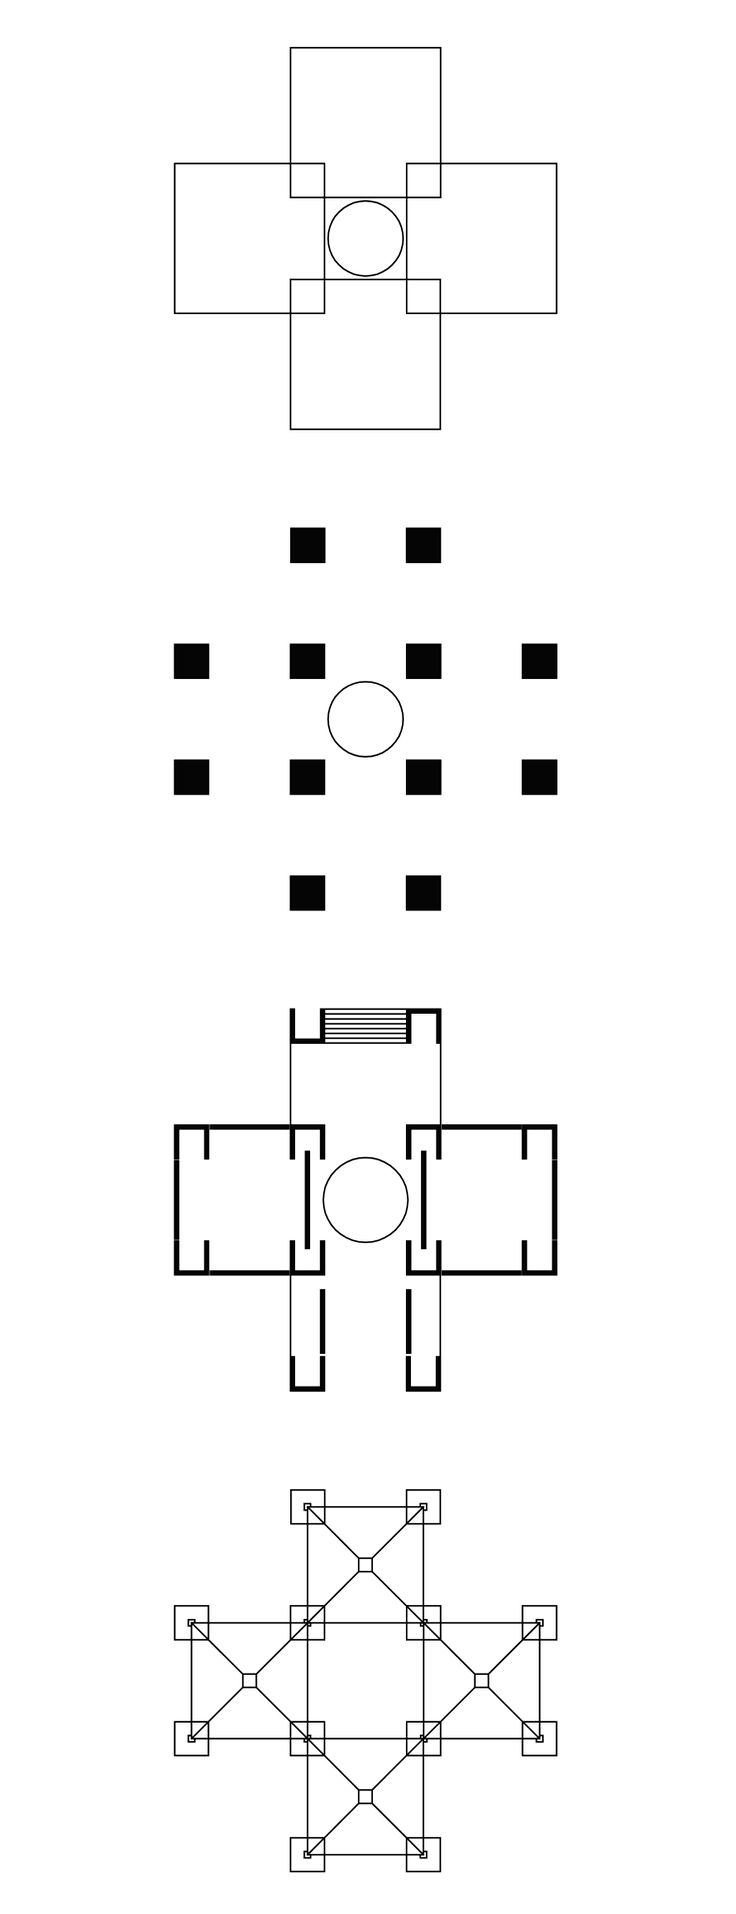 Louis Kahn + Anne Tyng | The Bath House design is a pavilion in the shape of a Greek cross composed of four squares